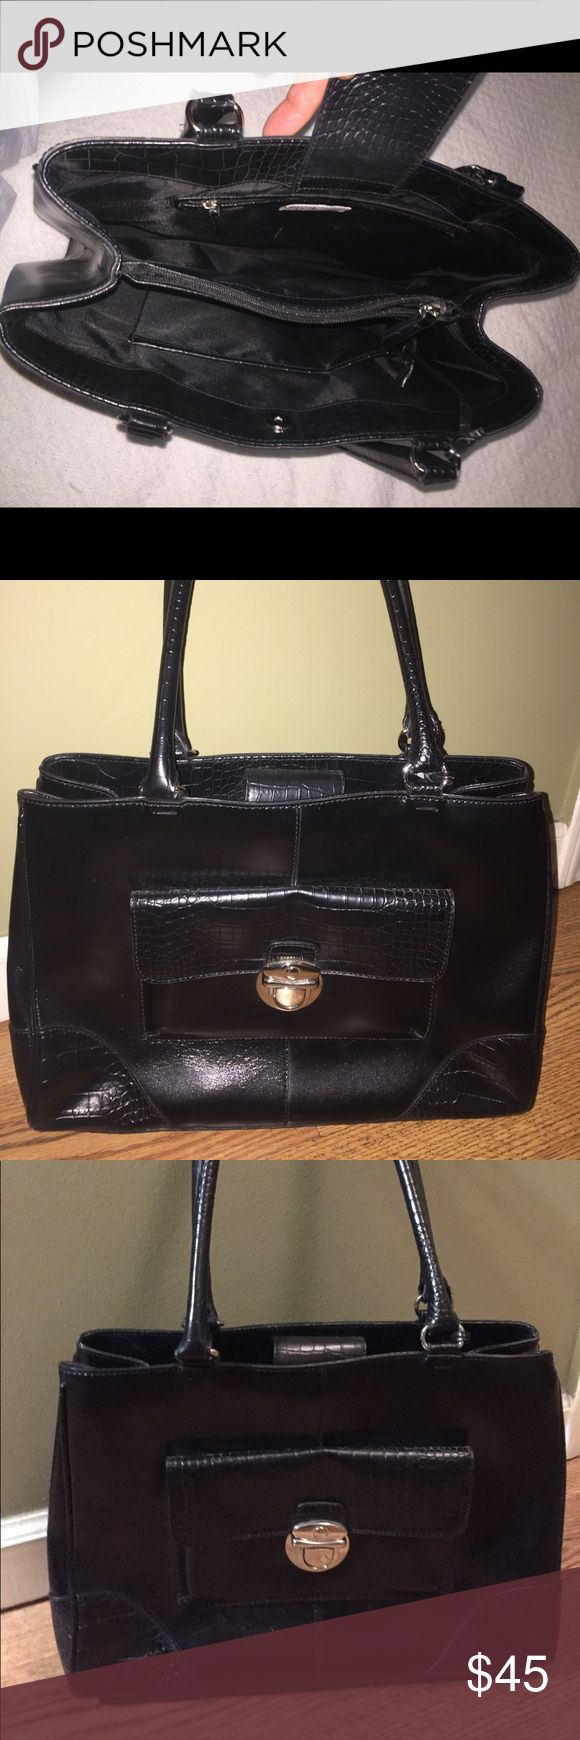 ANNE TAYLOR Loft Black Leather Handbag Business Beautiful Ann Taylor Loft Black Leather with embossed trim business bag with key.  Double handle carry, with key detail lined interior with four feet bottom. This bag iOS in Excellent Condition with little signs of wear. Ann Taylor Bags Shoulder Bags